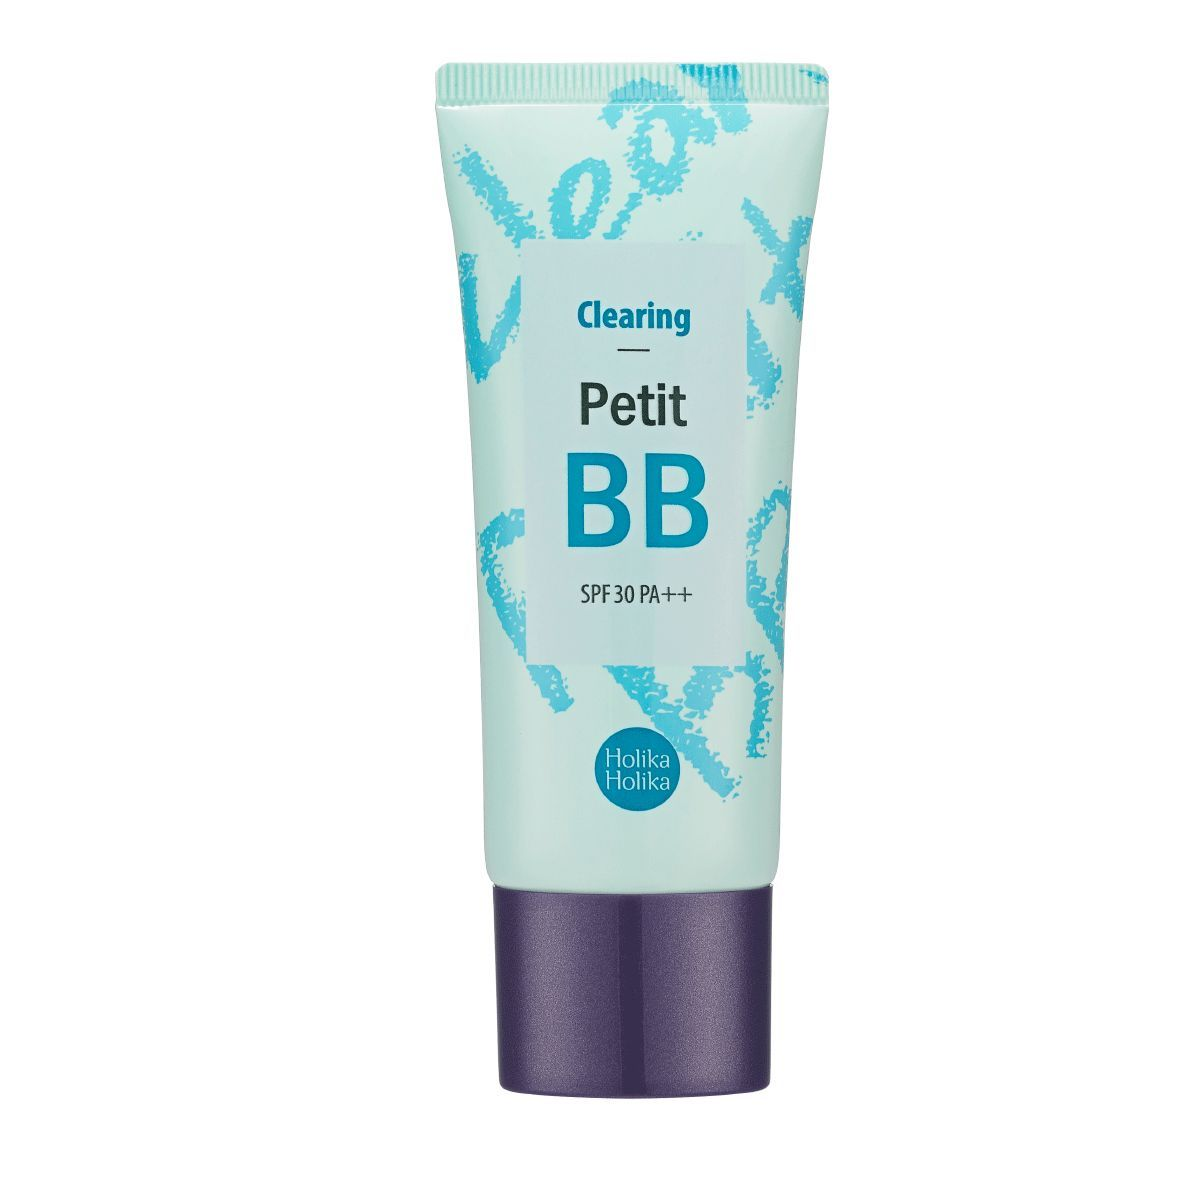 Health & Beauty > Personal Care > Cosmetics > Makeup > Face Makeup > Foundations & Concealers - Clearing Petit BB SPF30/PA++ Krem BB 30 Ml